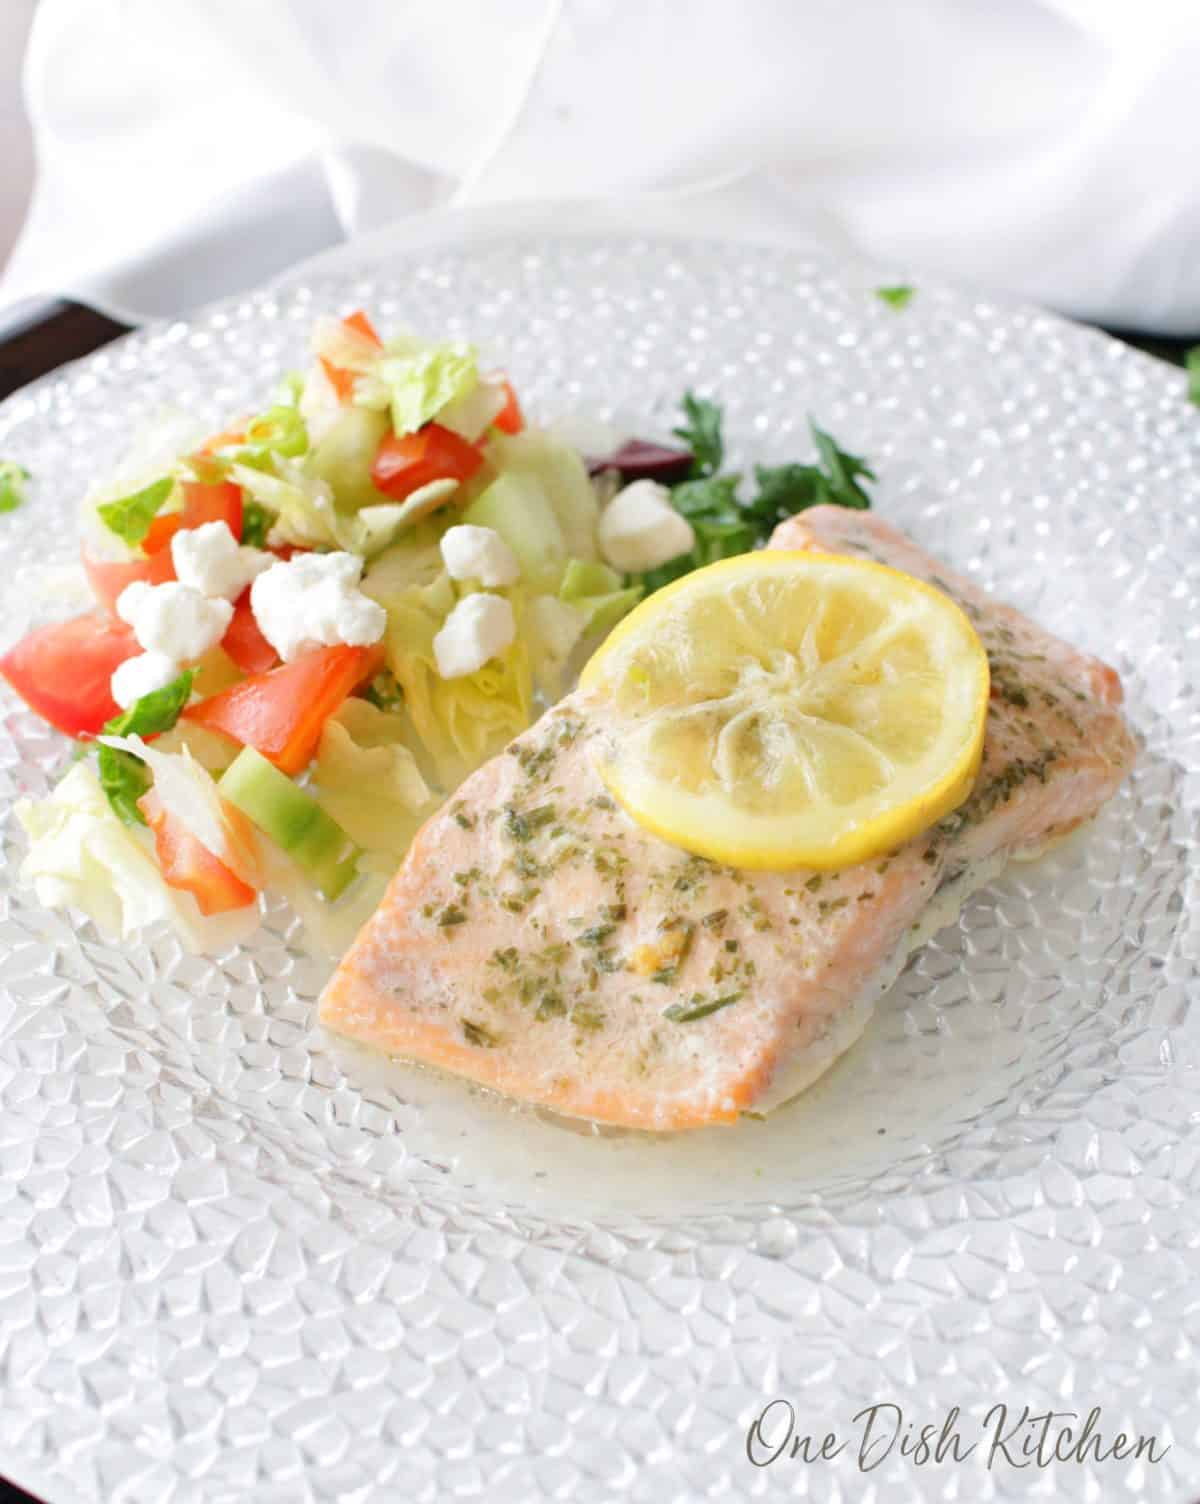 Baked salmon topped with a lemon wheel next to a side salad of iceberg lettuce, diced tomatoes and feta cheese all on a plate